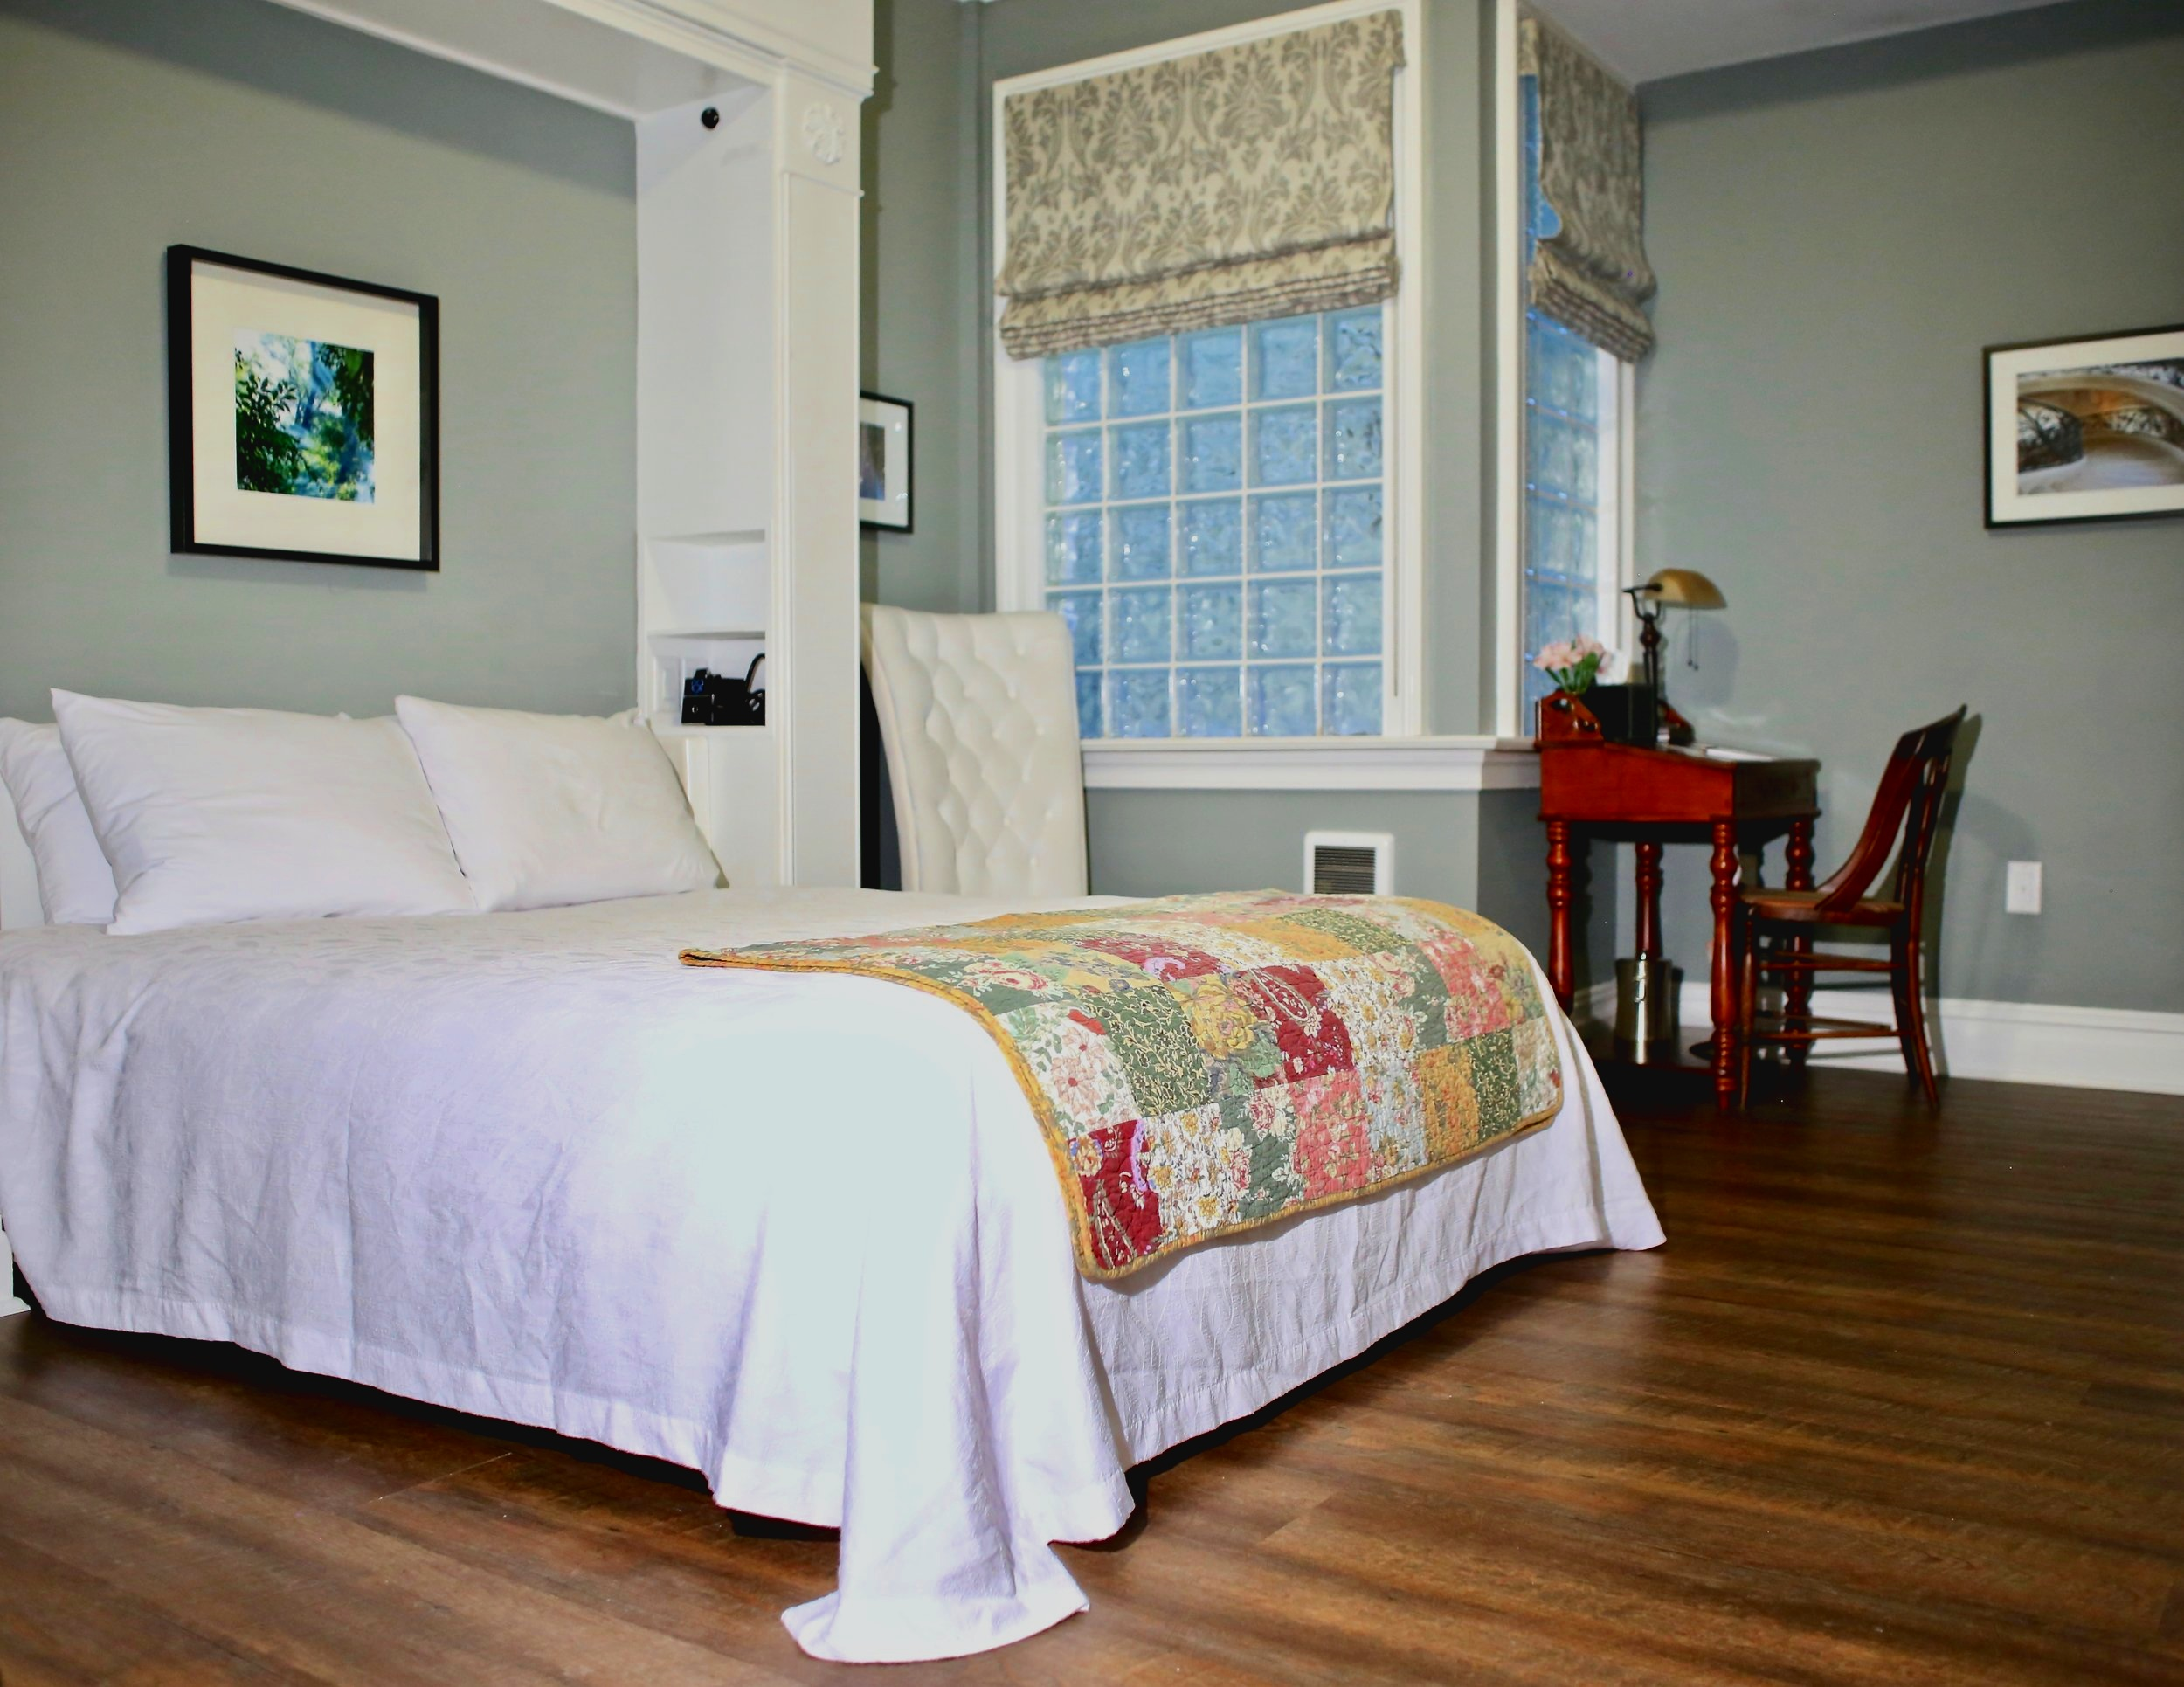 Charming boutique hotel in Beacon New York